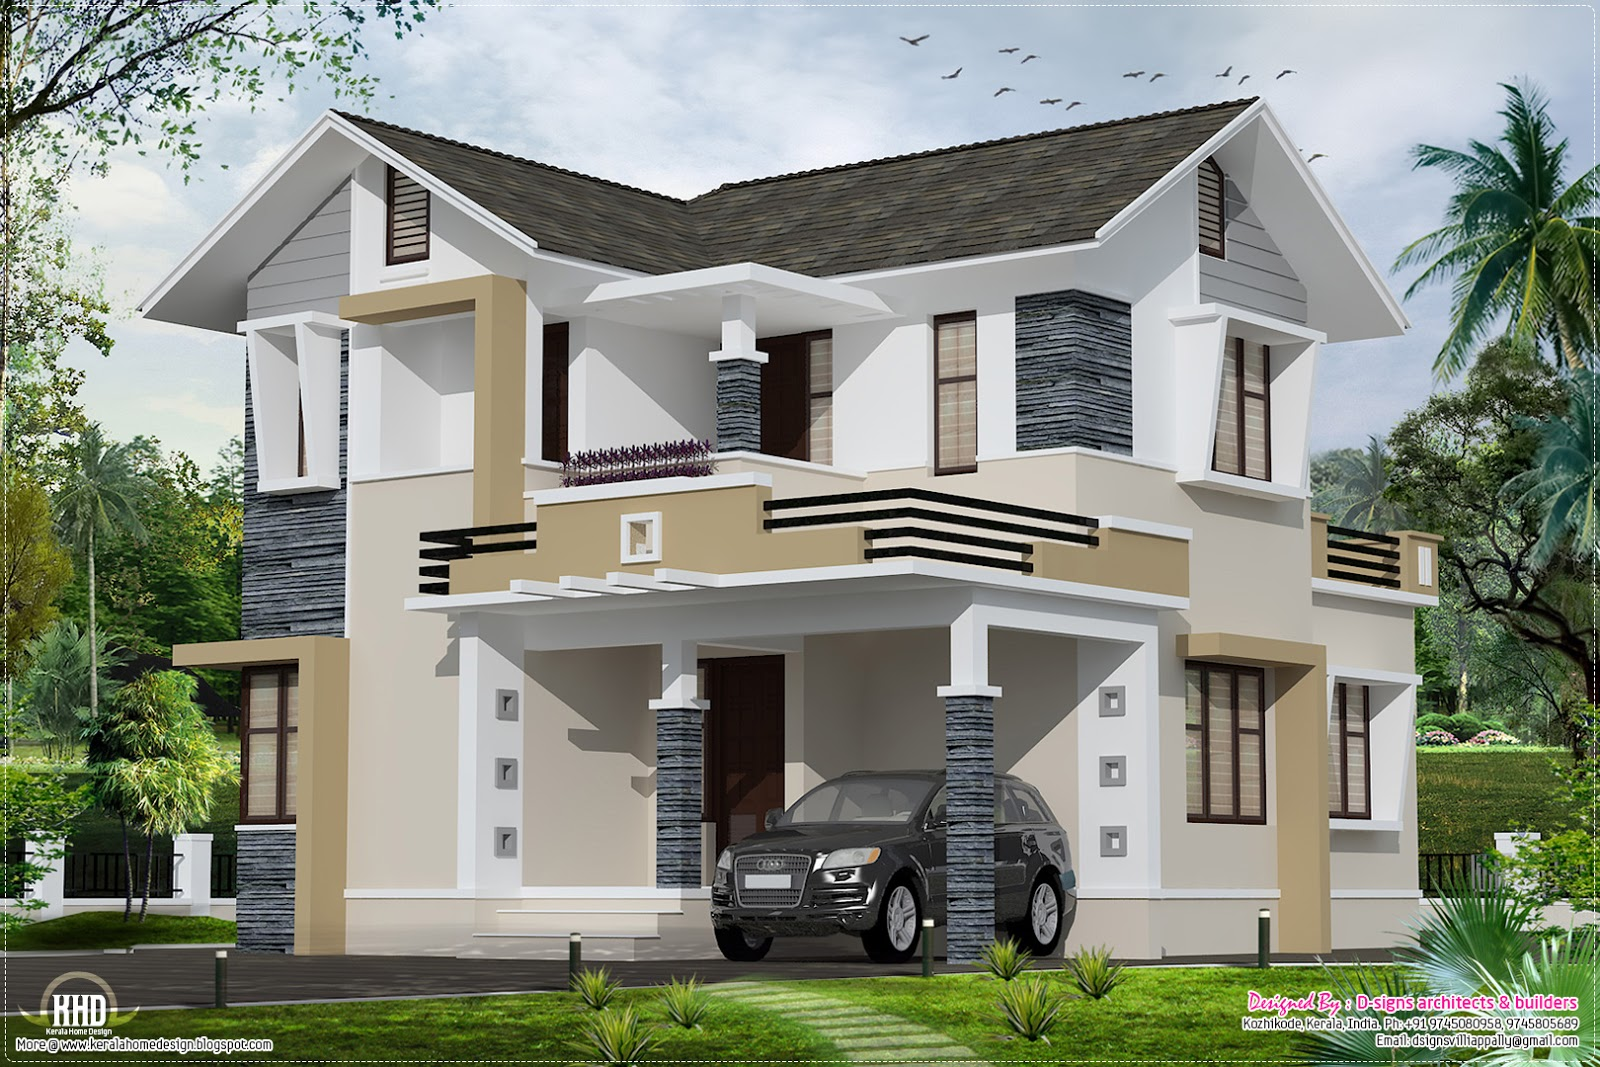 Stylish small home design kerala home design and floor plans for Small house design pictures